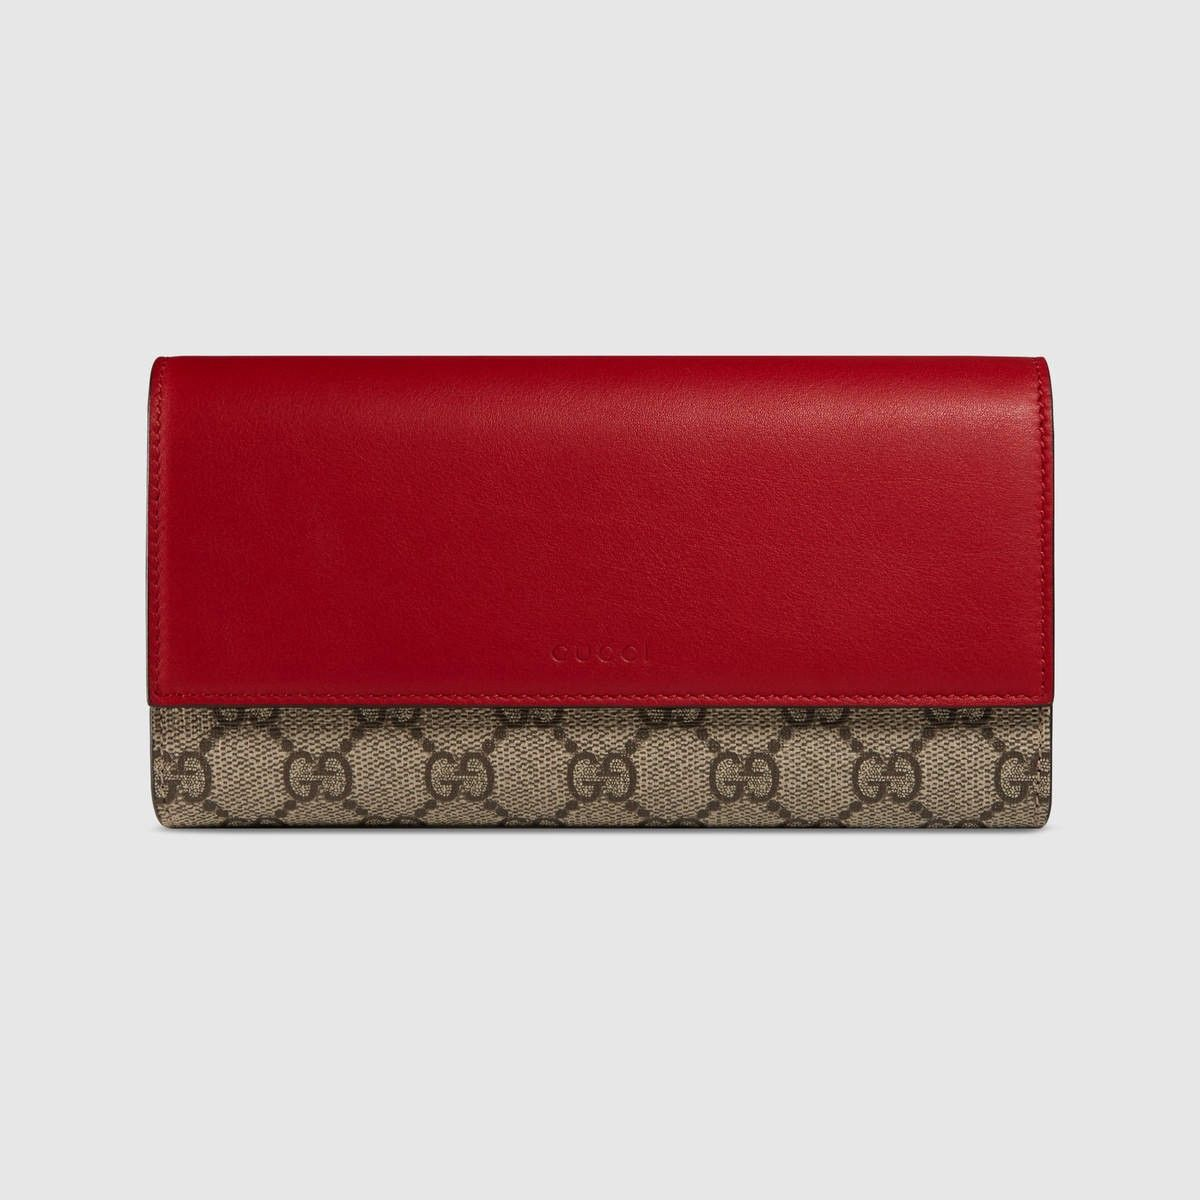 9c764b7f70b Shop the GG Supreme wallet by Gucci. A GG Supreme canvas continental wallet  with a snap closure and a multicolor leather flap.